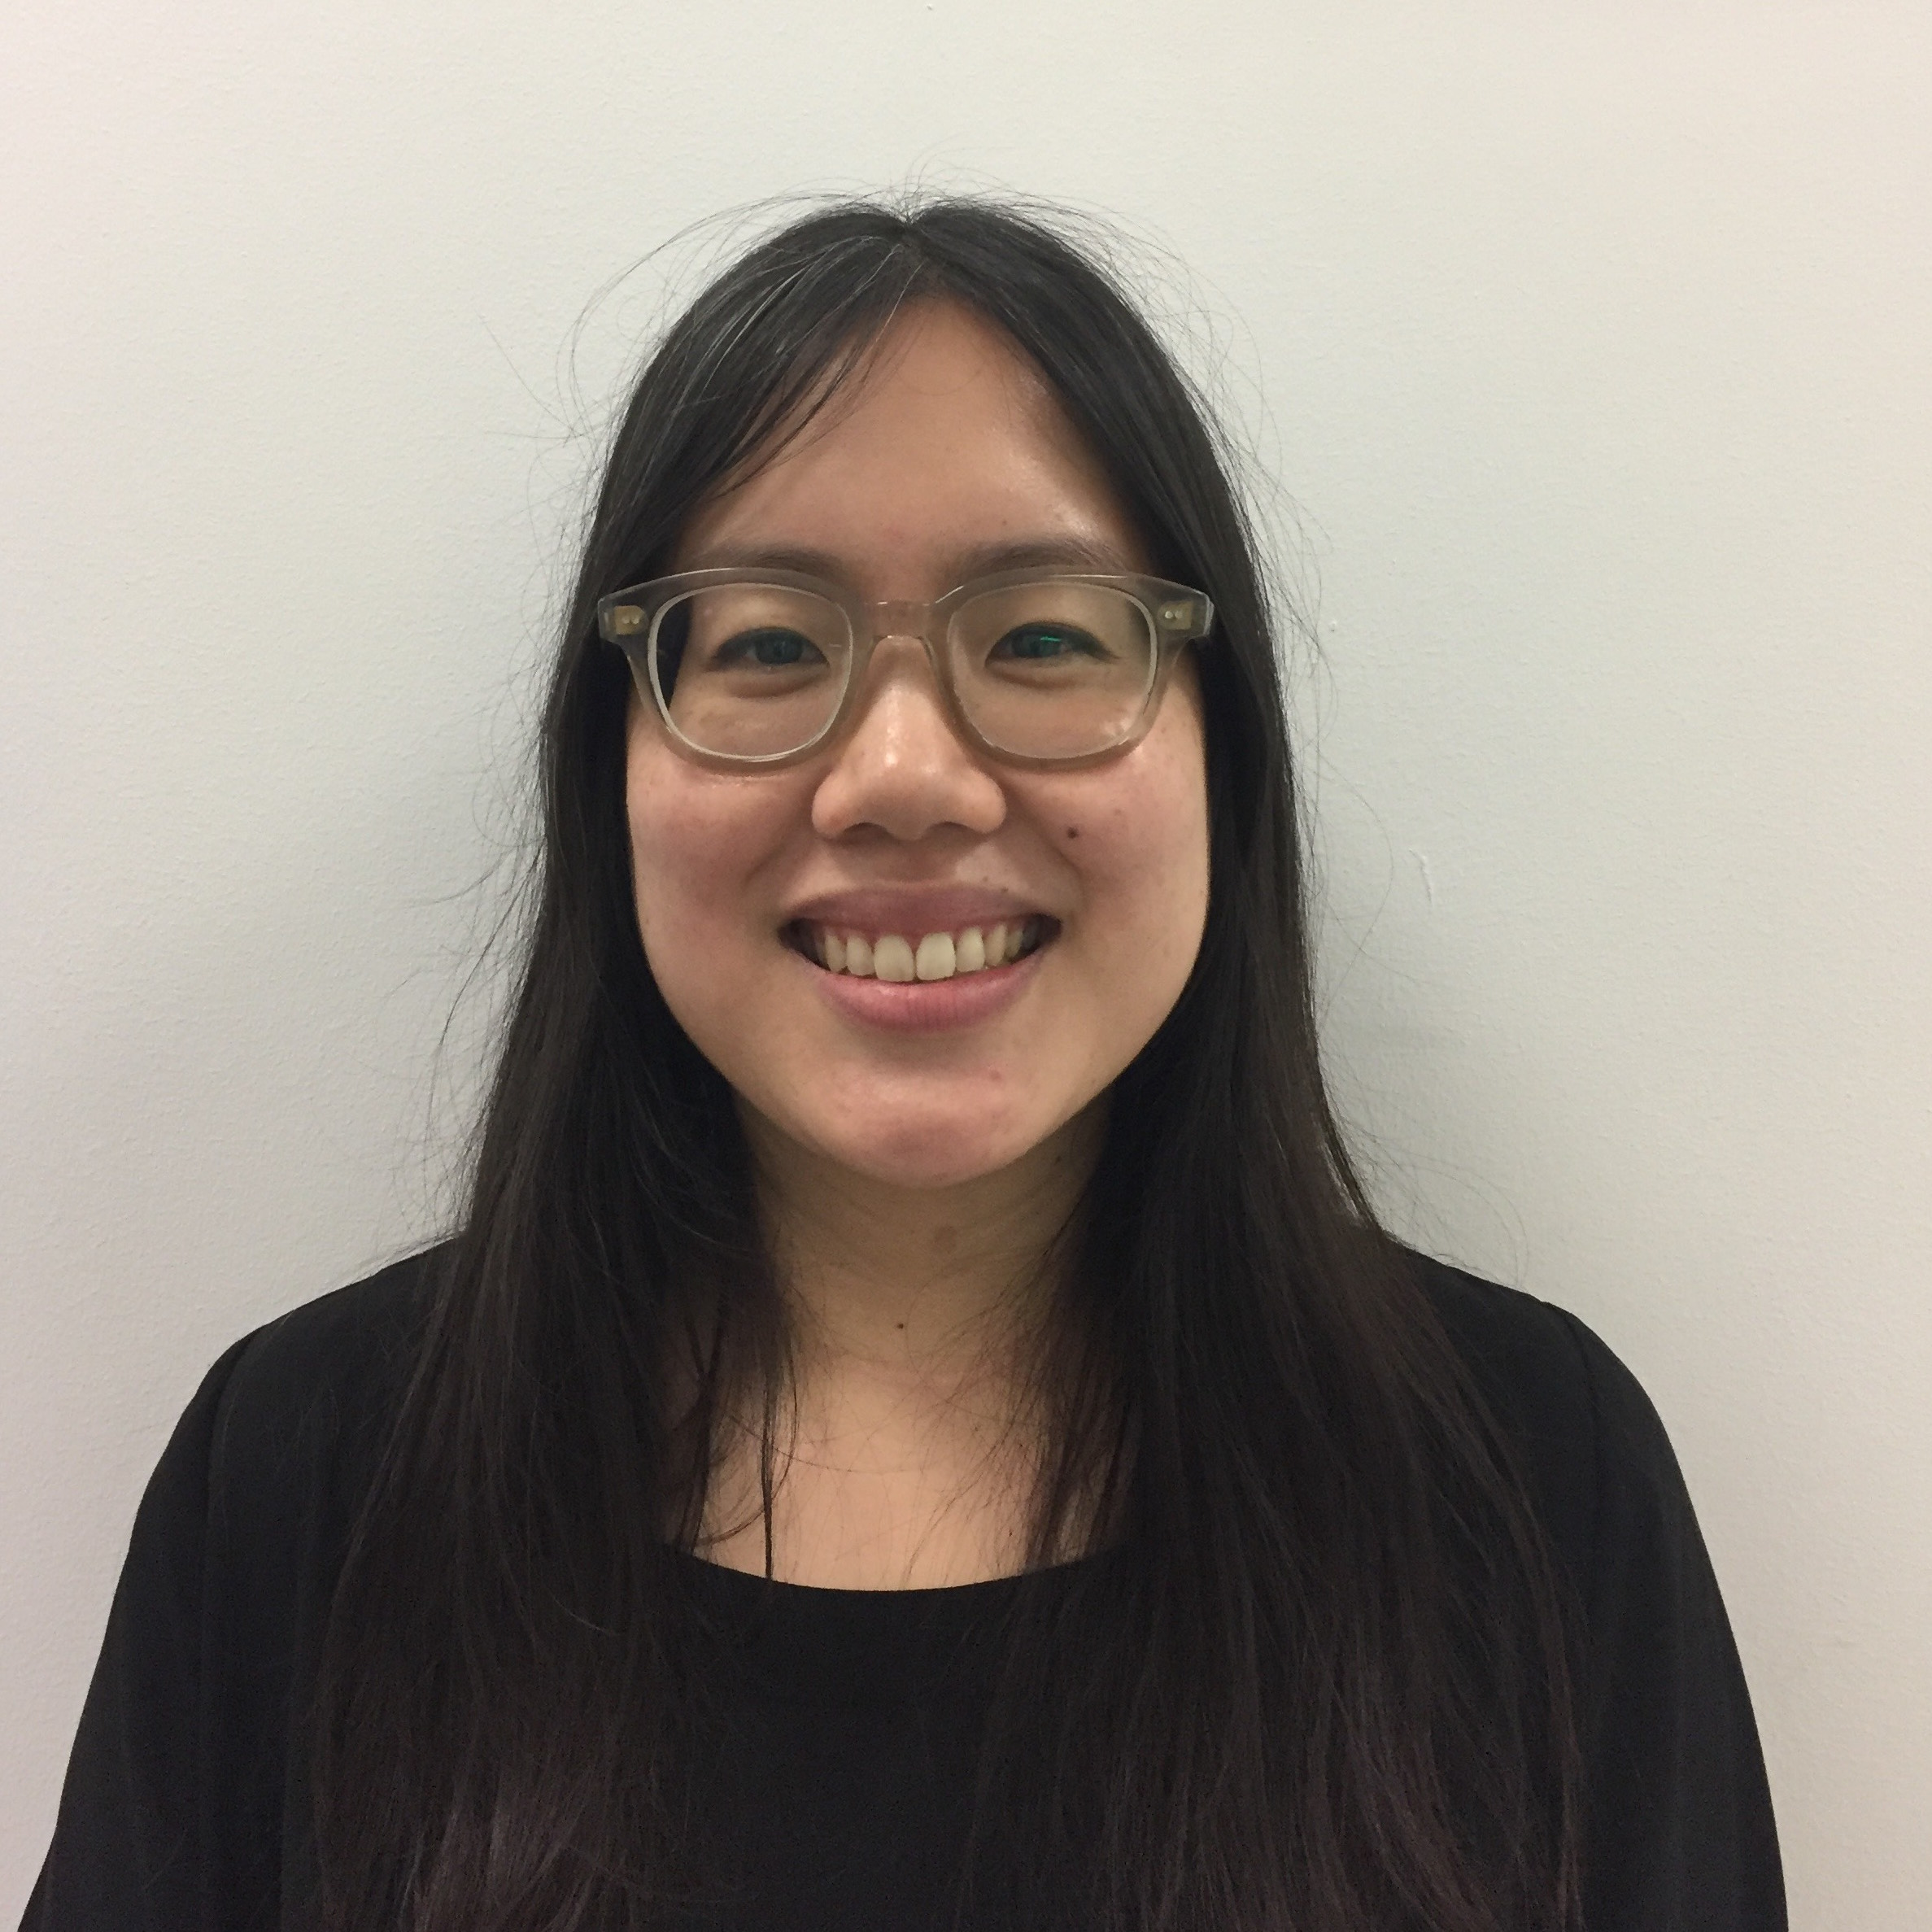 CHAU NGUYEN(OT) - Chau Nguyen graduated with her Doctorate in Occupational Therapy from Washington University in St. Louis in 2012. She currently works in NYC with children and young adults with brain injury.